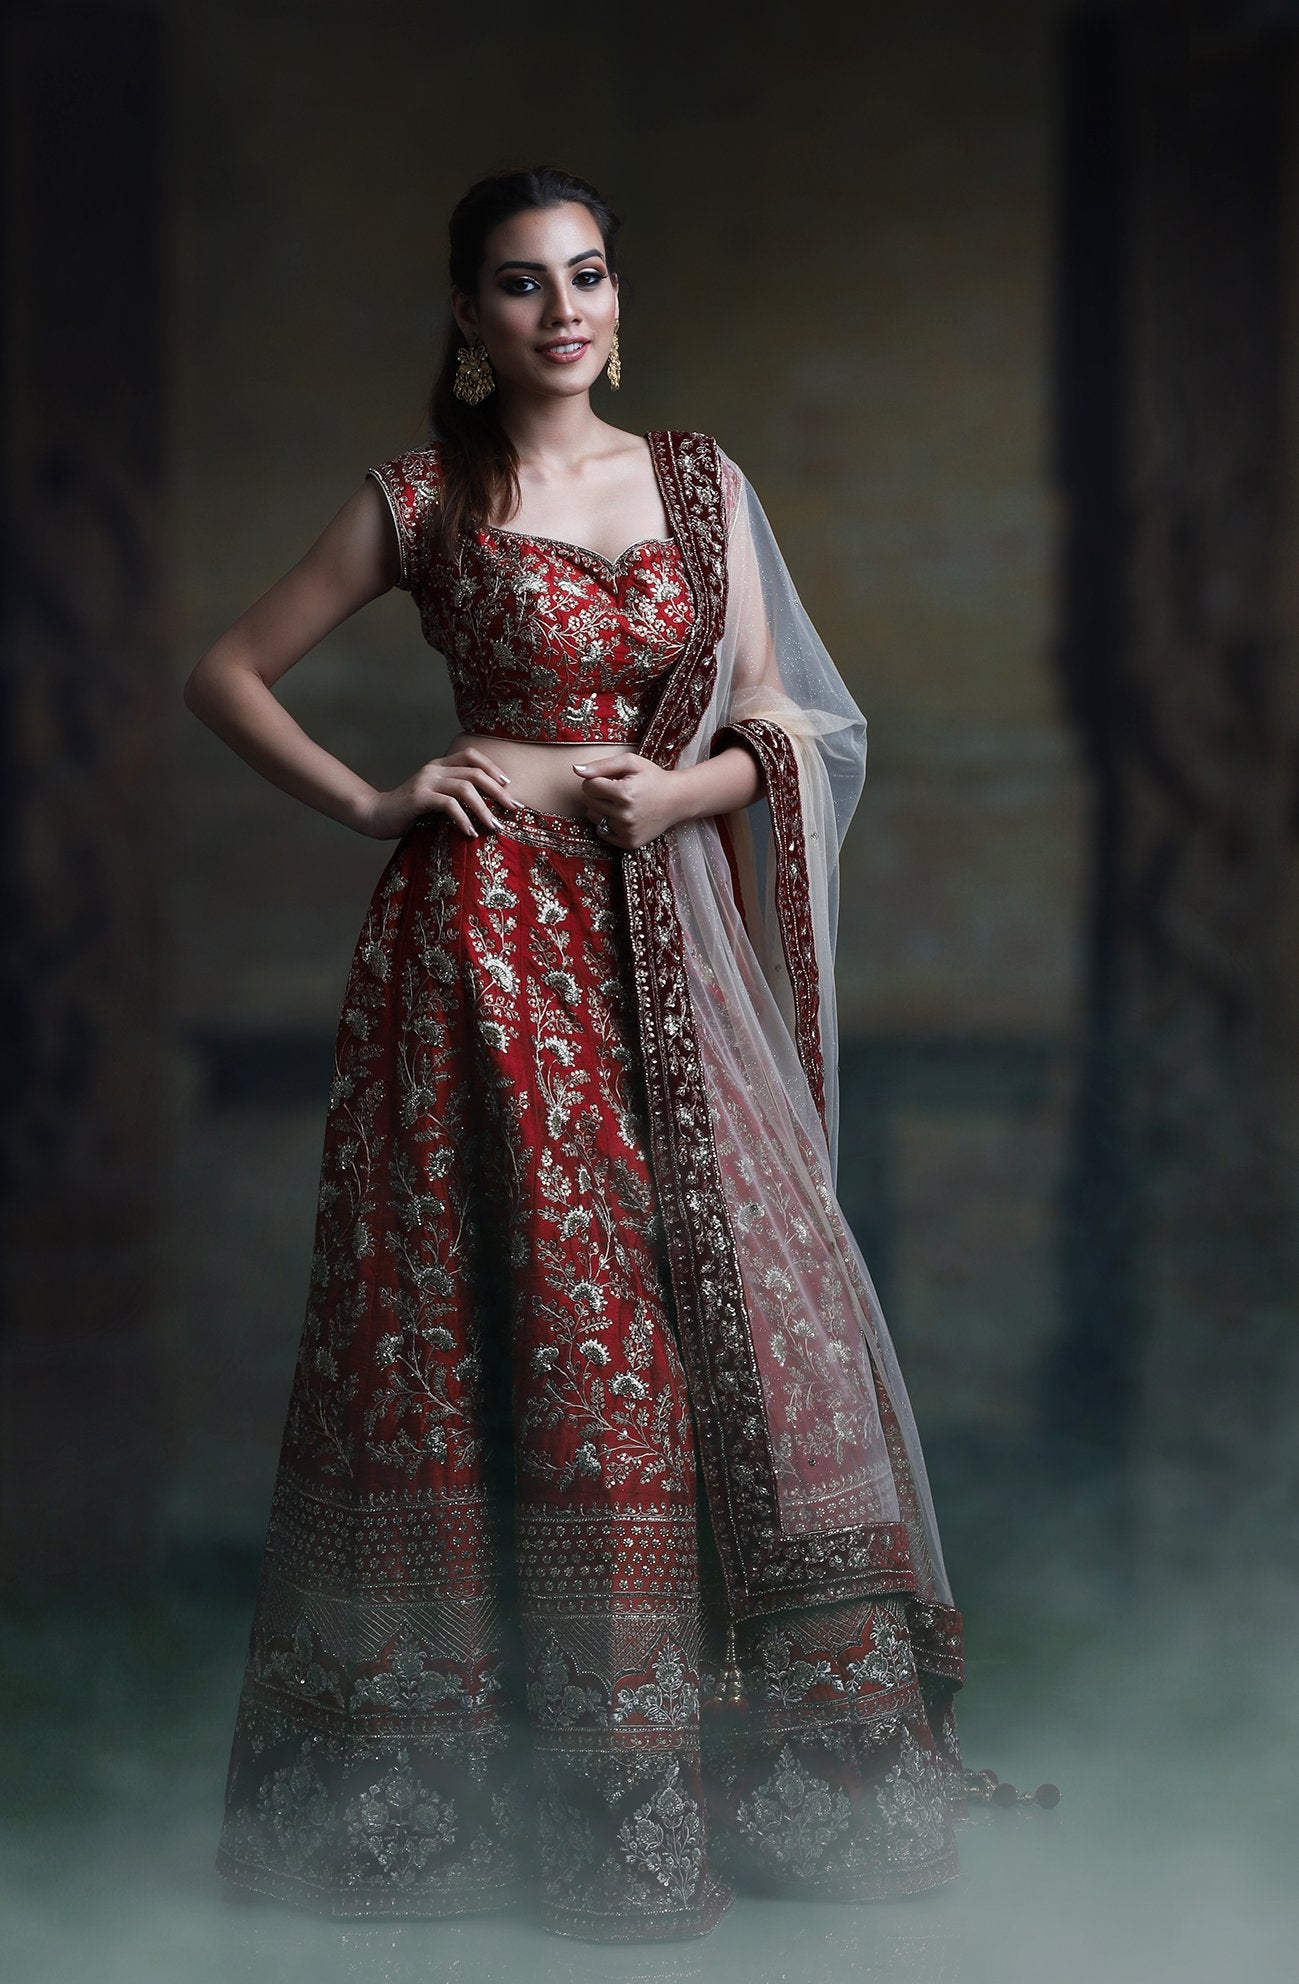 NEW LOOK WEDDING WEAR LEHENGA CHOLI - NV-013